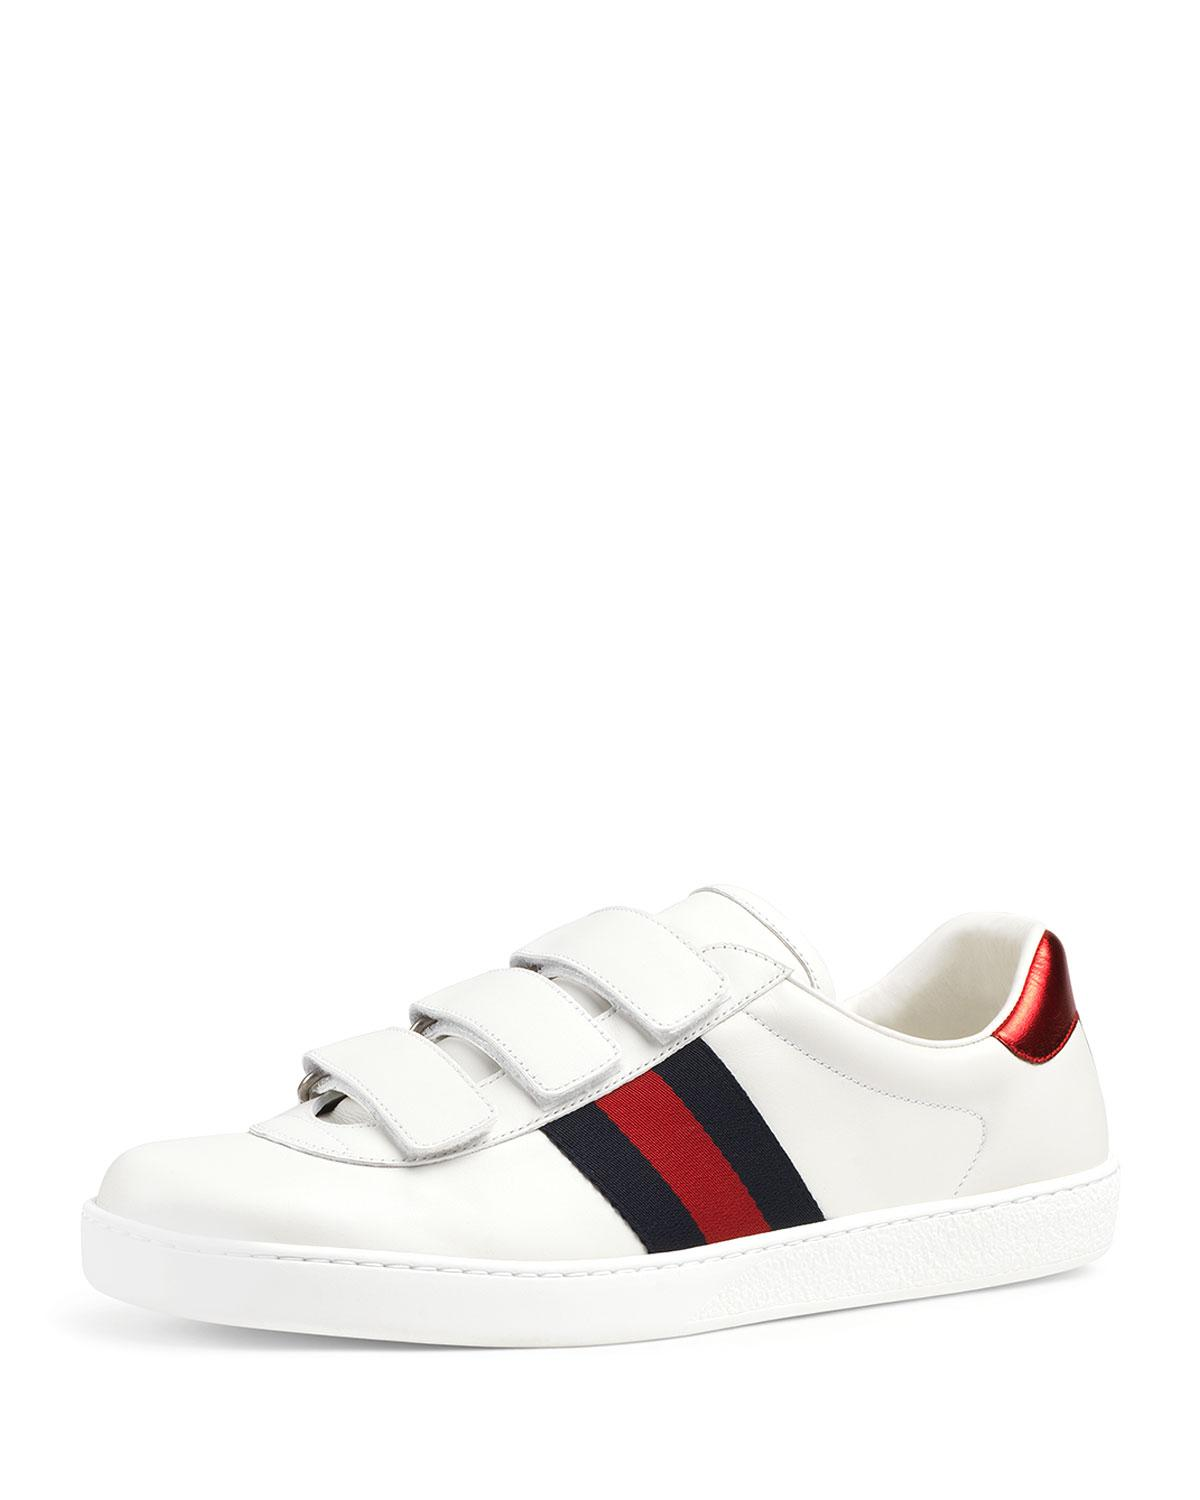 0f0c096c464 Gucci Men s Leather Grip-strap Sneakers With Web in White for Men - Lyst